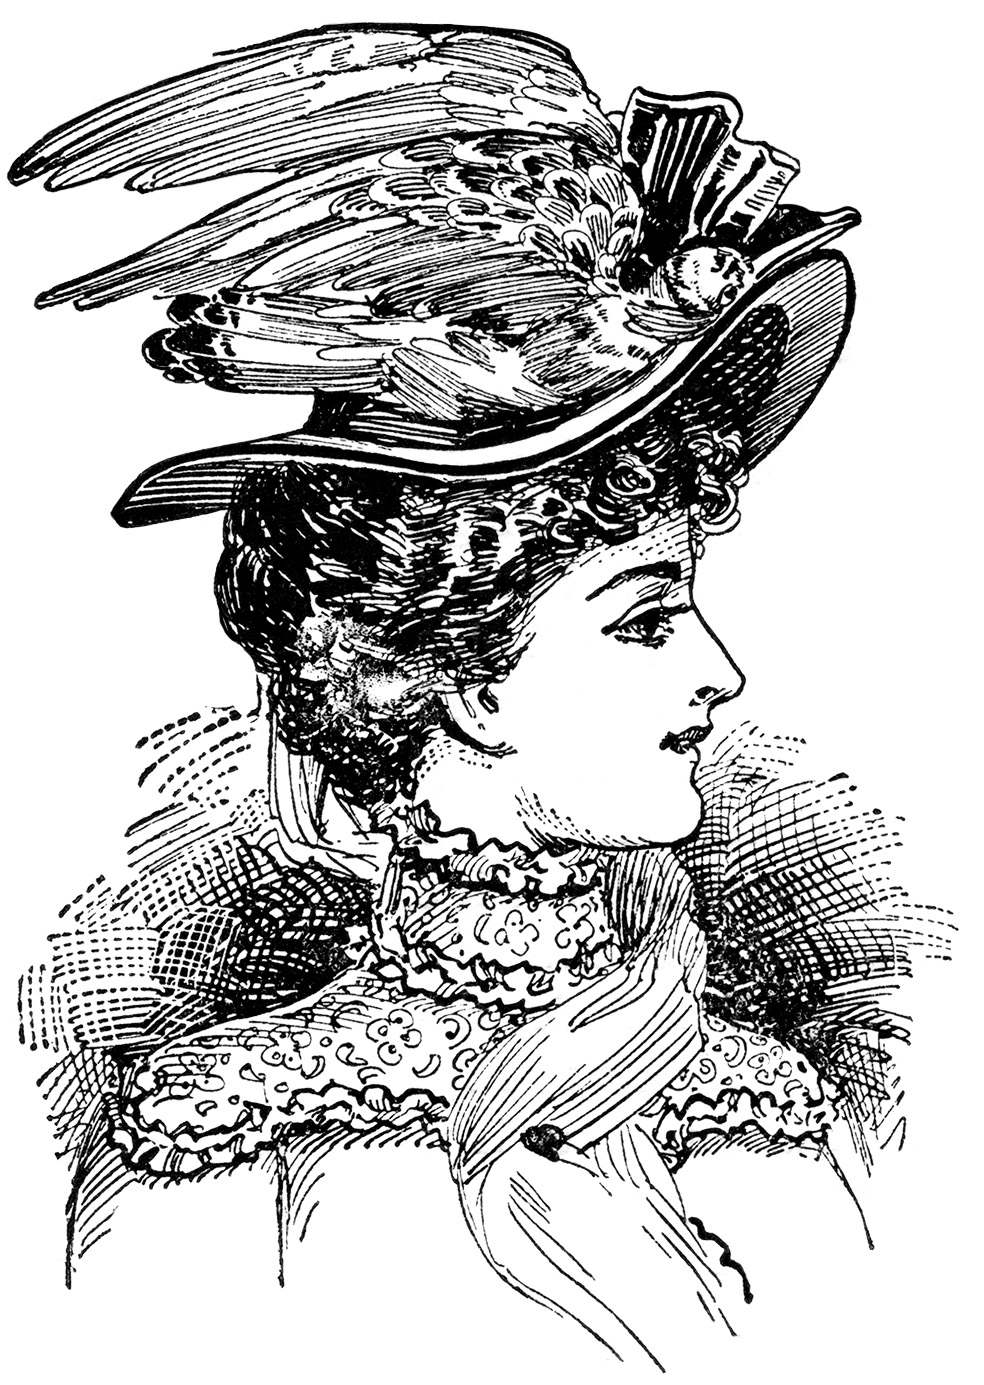 Victorian Fashion Archives - Page 5 of 9 - The Graphics Fairy  |Vintage Hat Art